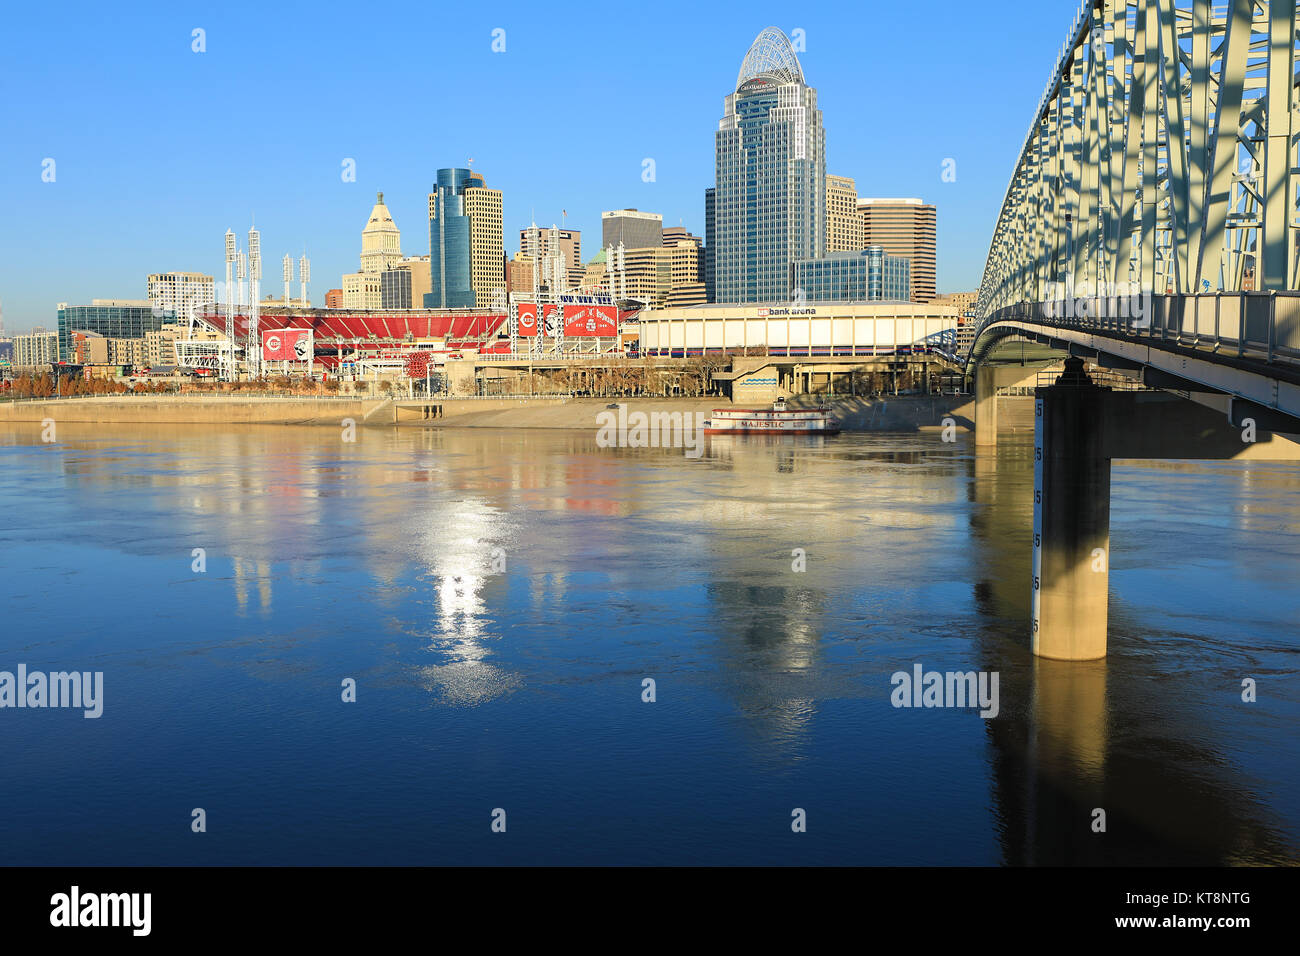 The Great American Ballpark in Cincinnati with Ohio River in front - Stock Image